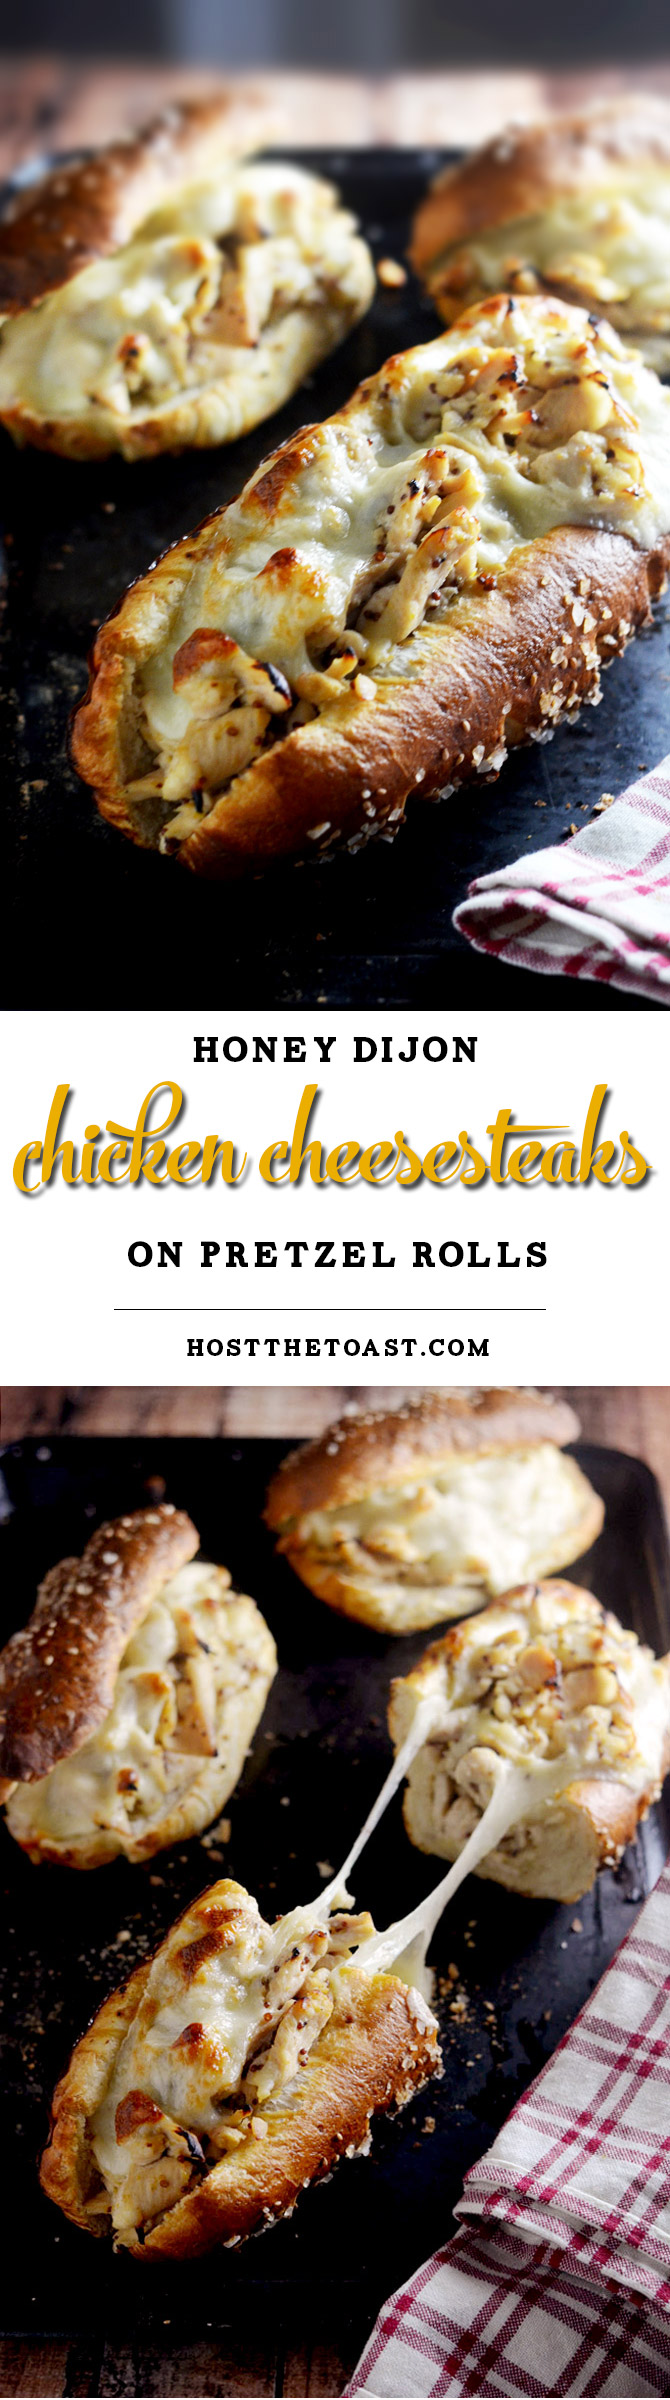 Honey Dijon Chicken Cheesesteaks with Pretzel Rolls. You need to make these ASAP. The pretzel rolls are made with frozen bread and baking soda!   hostthetoast.com